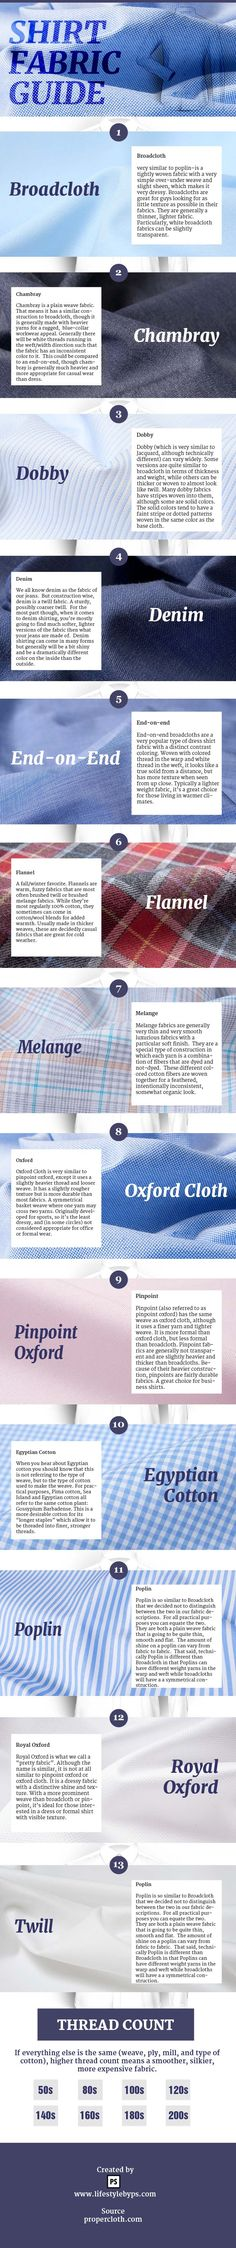 Advanced Guide to Men's Shirt Fabric